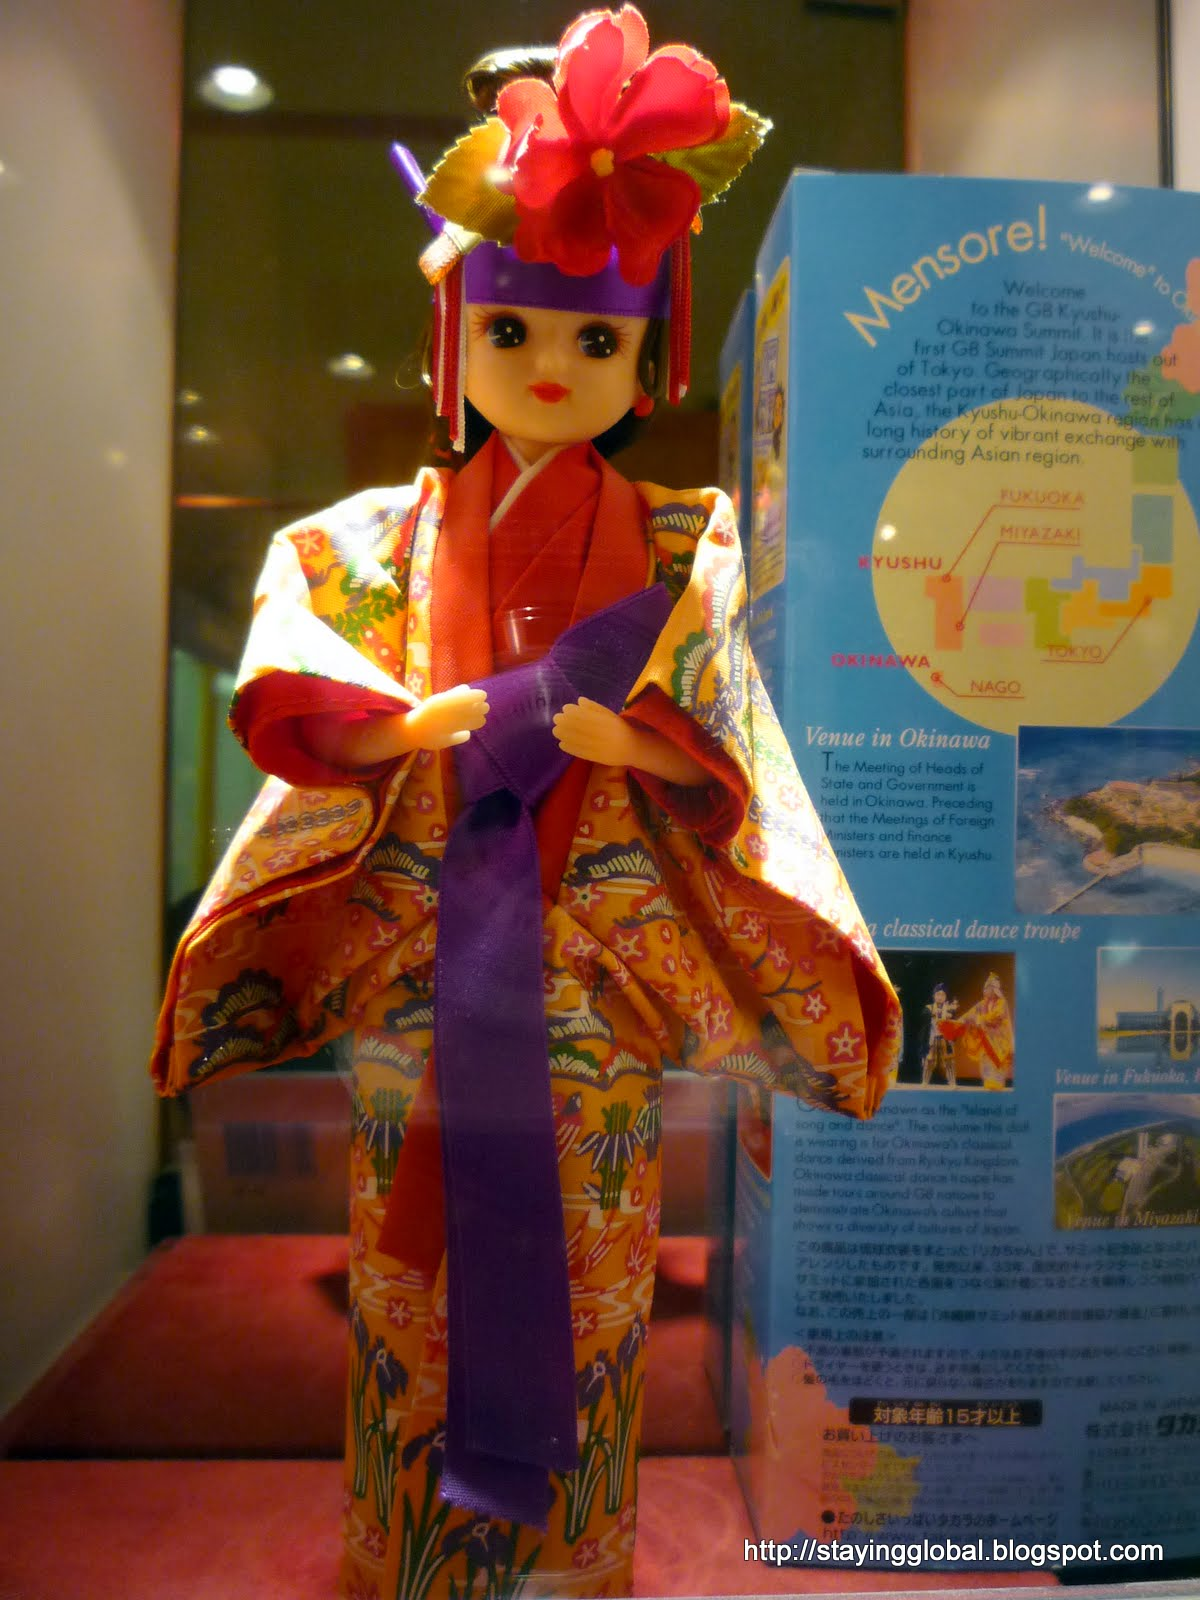 Licca-chan, the Japanese Girl's Long-Time Favorite - JPVisitor